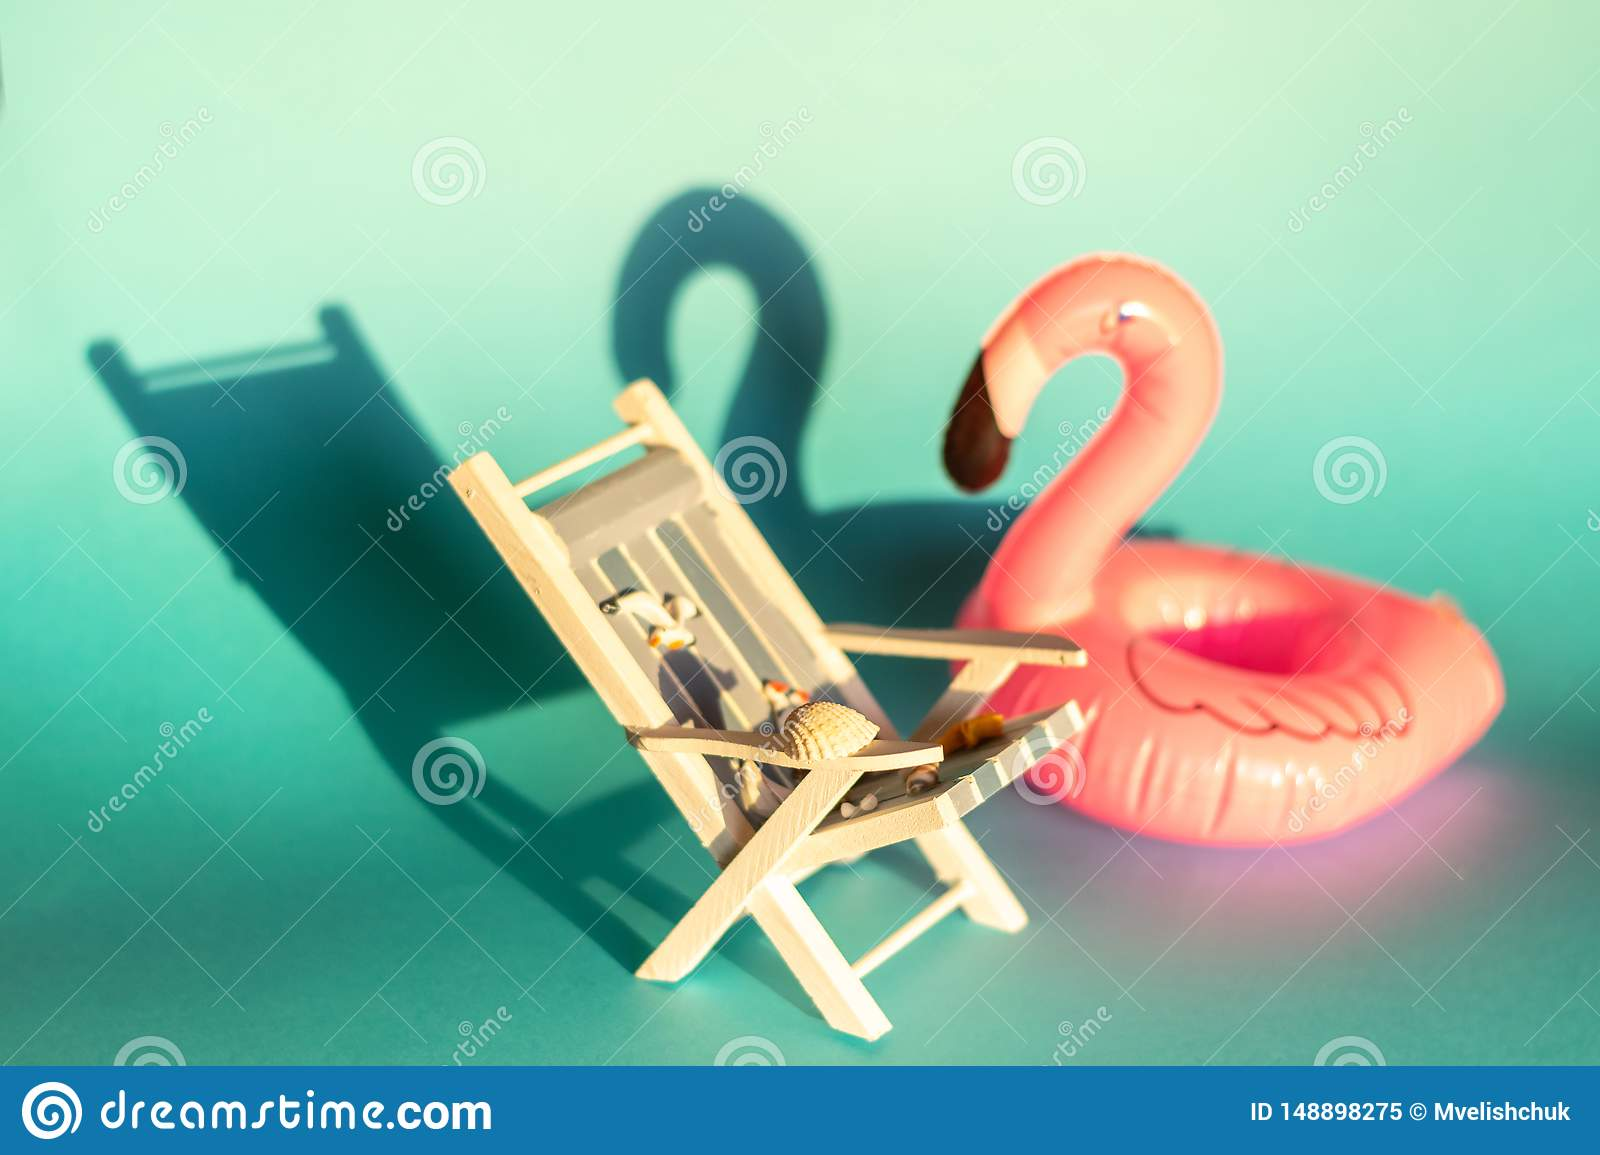 Inflatable Flamingo and deckchair on a blue background, pool float party,